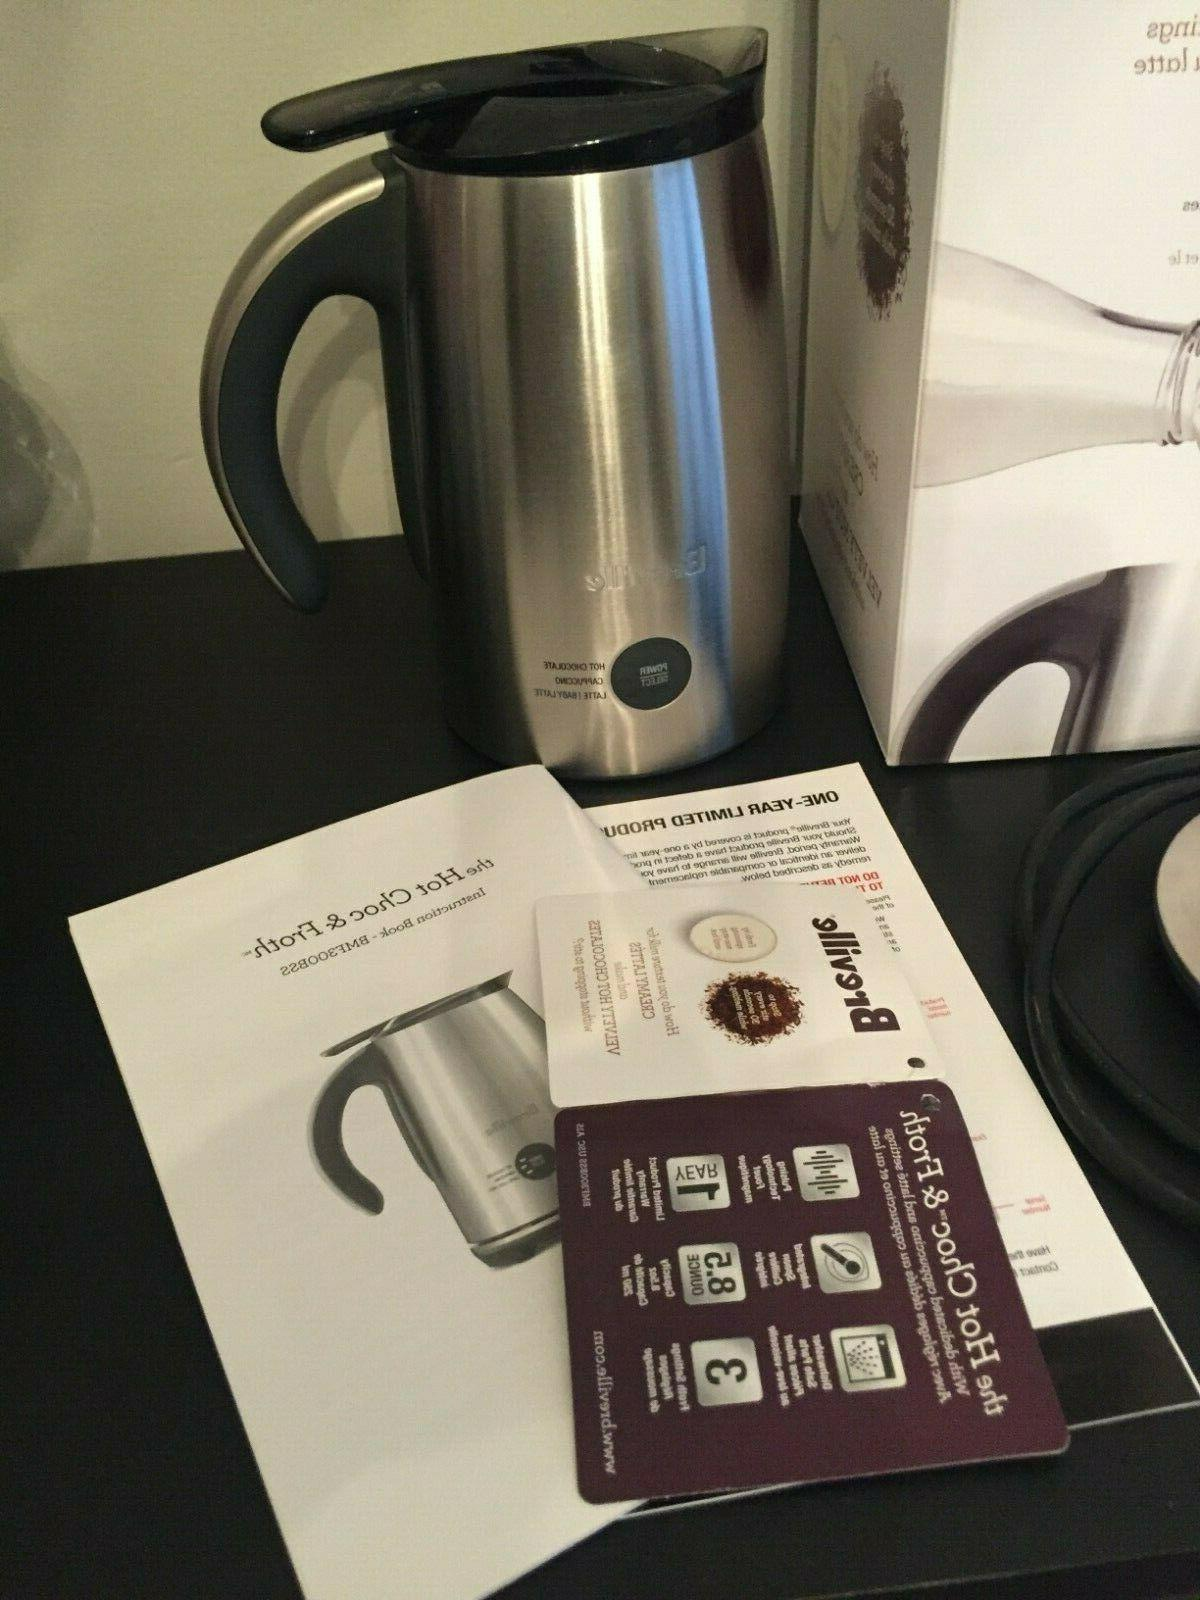 Breville Hot Milk Frother, Brushed Stainless